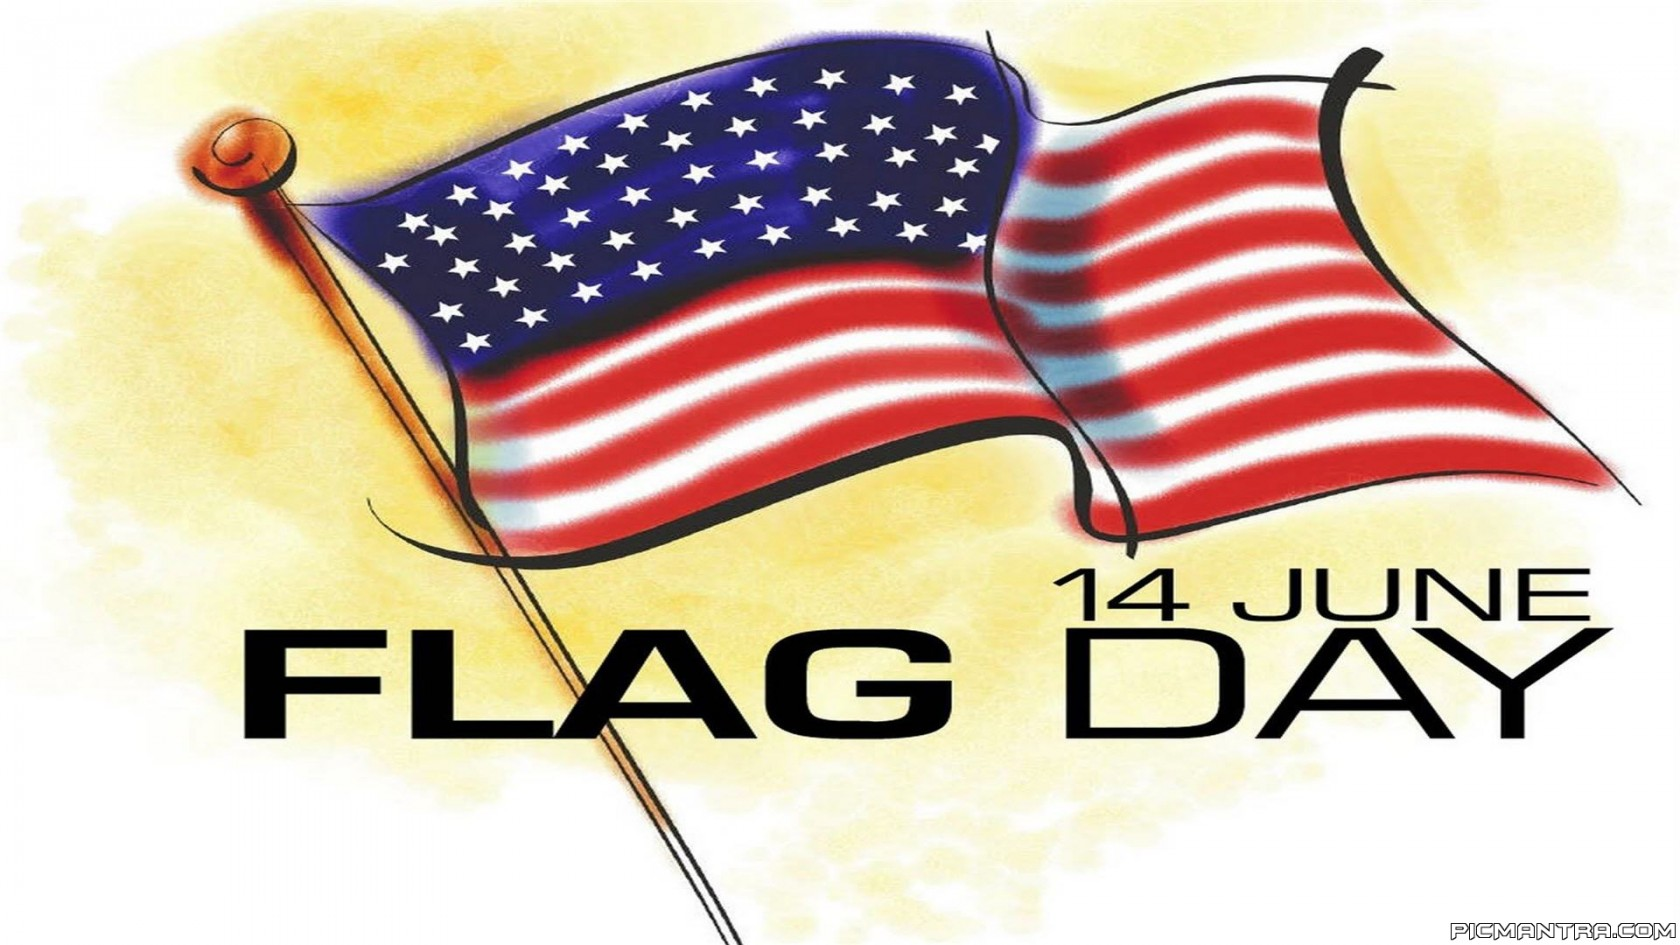 Flag day 2017 clipart svg royalty free download Flag Day United States – June 14 svg royalty free download